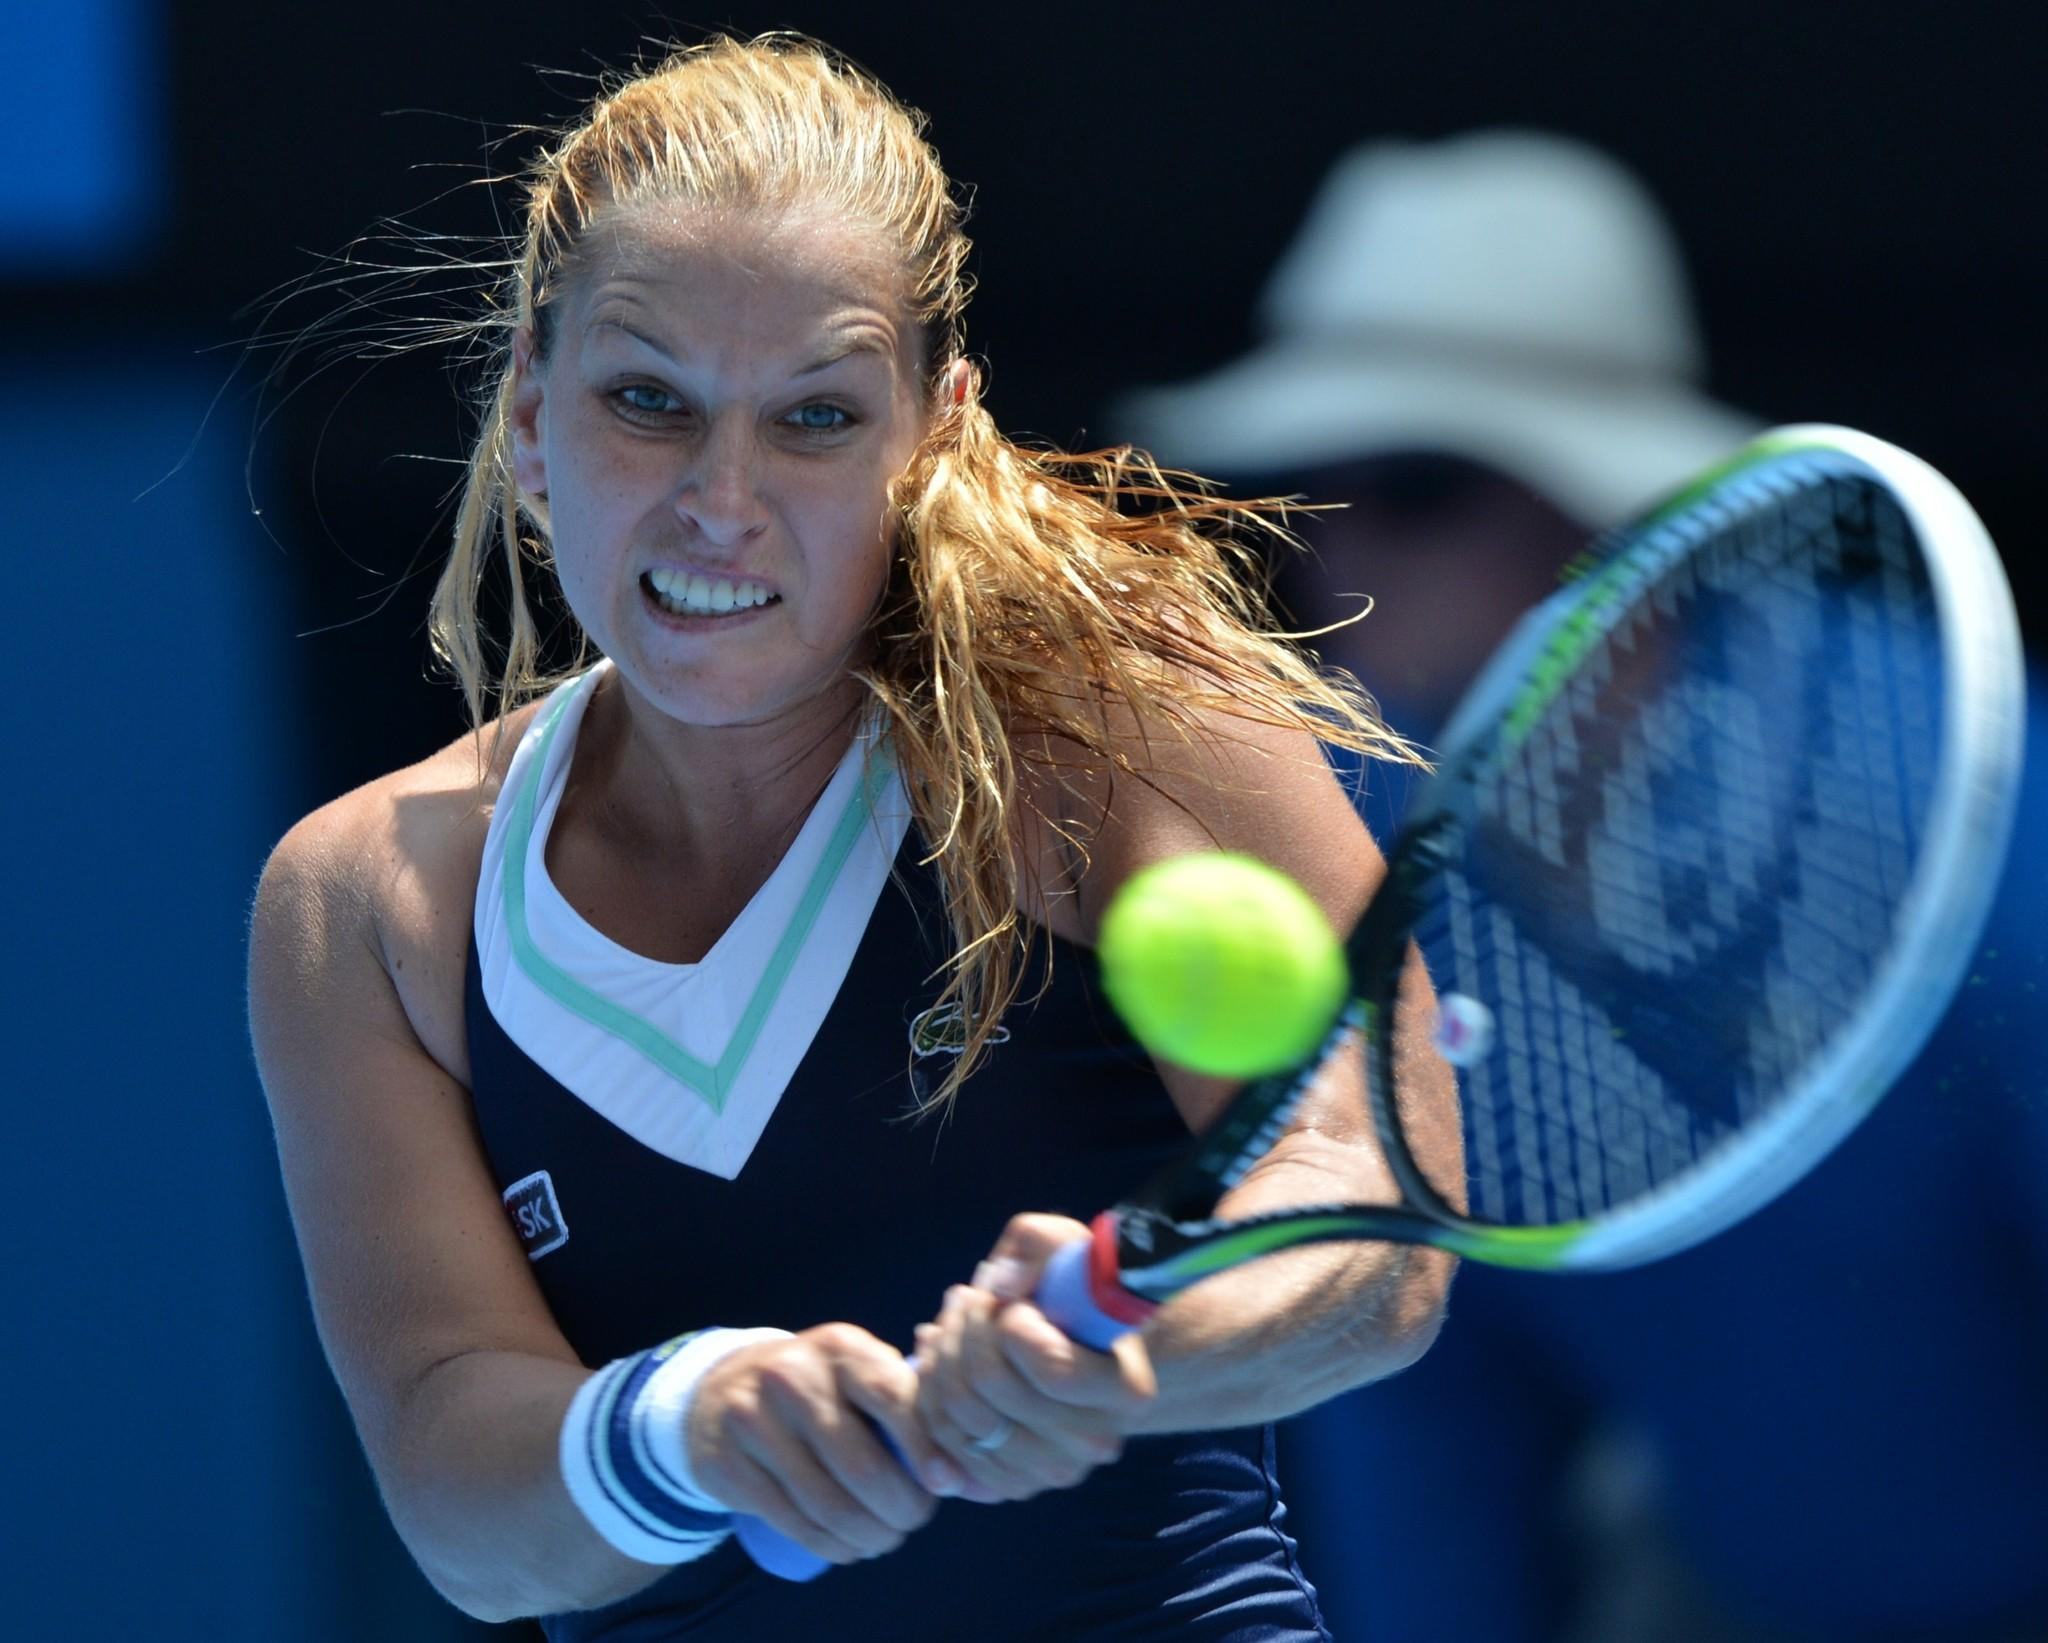 Slovakia's Dominika Cibulkova plays a shot during her women's singles match against Russia's Maria Sharapova.